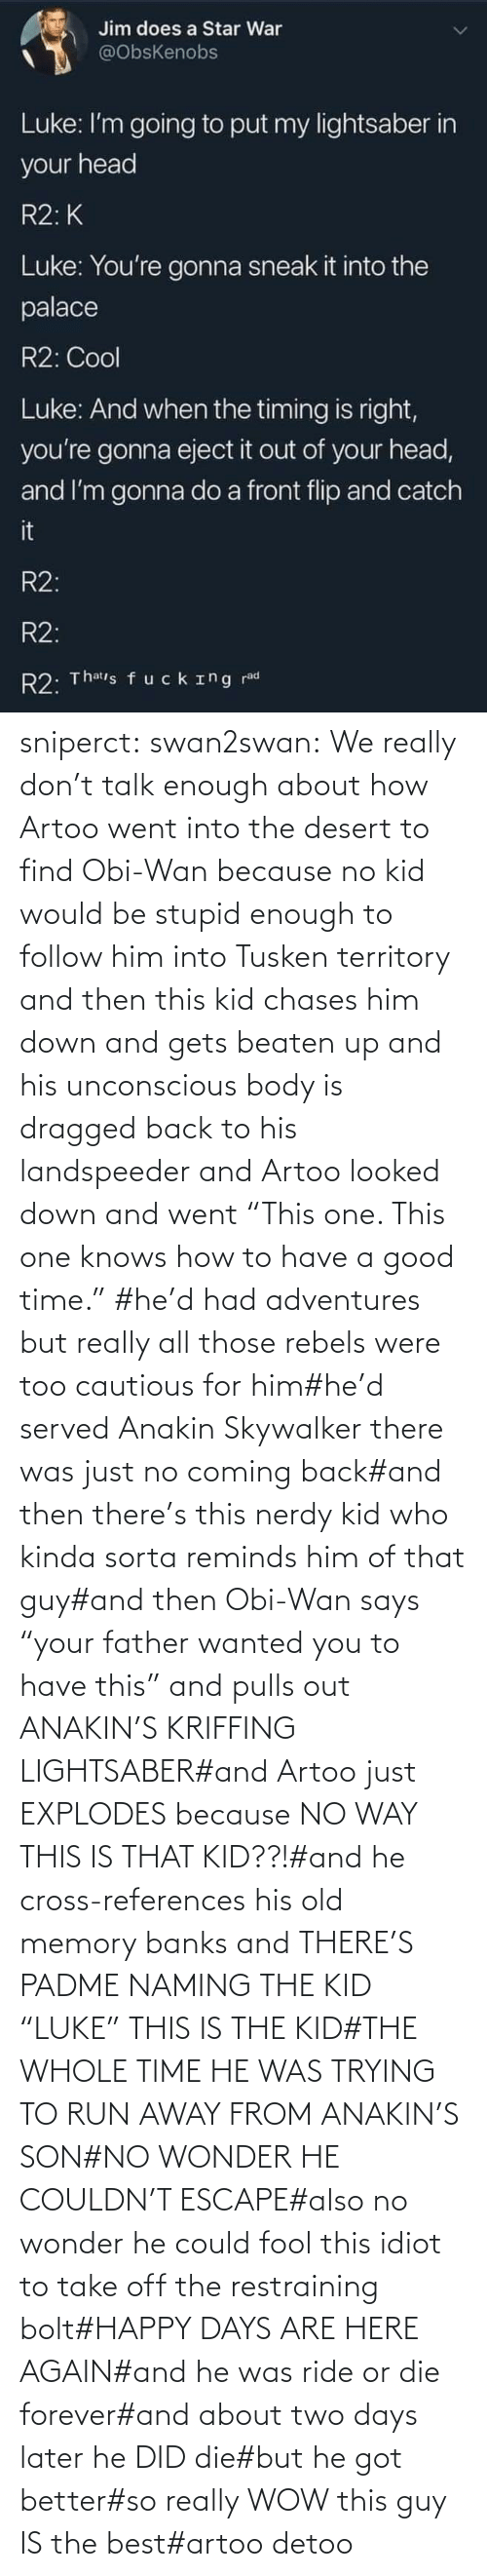 "Cross: sniperct:  swan2swan: We really don't talk enough about how Artoo went into the desert to find Obi-Wan because no kid would be stupid enough to follow him into Tusken territory and then this kid chases him down and gets beaten up and his unconscious body is dragged back to his landspeeder and Artoo looked down and went ""This one. This one knows how to have a good time.""  #he'd had adventures but really all those rebels were too cautious for him#he'd served Anakin Skywalker there was just no coming back#and then there's this nerdy kid who kinda sorta reminds him of that guy#and then Obi-Wan says ""your father wanted you to have this"" and pulls out ANAKIN'S KRIFFING LIGHTSABER#and Artoo just EXPLODES because NO WAY THIS IS THAT KID??!#and he cross-references his old memory banks and THERE'S PADME NAMING THE KID ""LUKE"" THIS IS THE KID#THE WHOLE TIME HE WAS TRYING TO RUN AWAY FROM ANAKIN'S SON#NO WONDER HE COULDN'T ESCAPE#also no wonder he could fool this idiot to take off the restraining bolt#HAPPY DAYS ARE HERE AGAIN#and he was ride or die forever#and about two days later he DID die#but he got better#so really WOW this guy IS the best#artoo detoo"